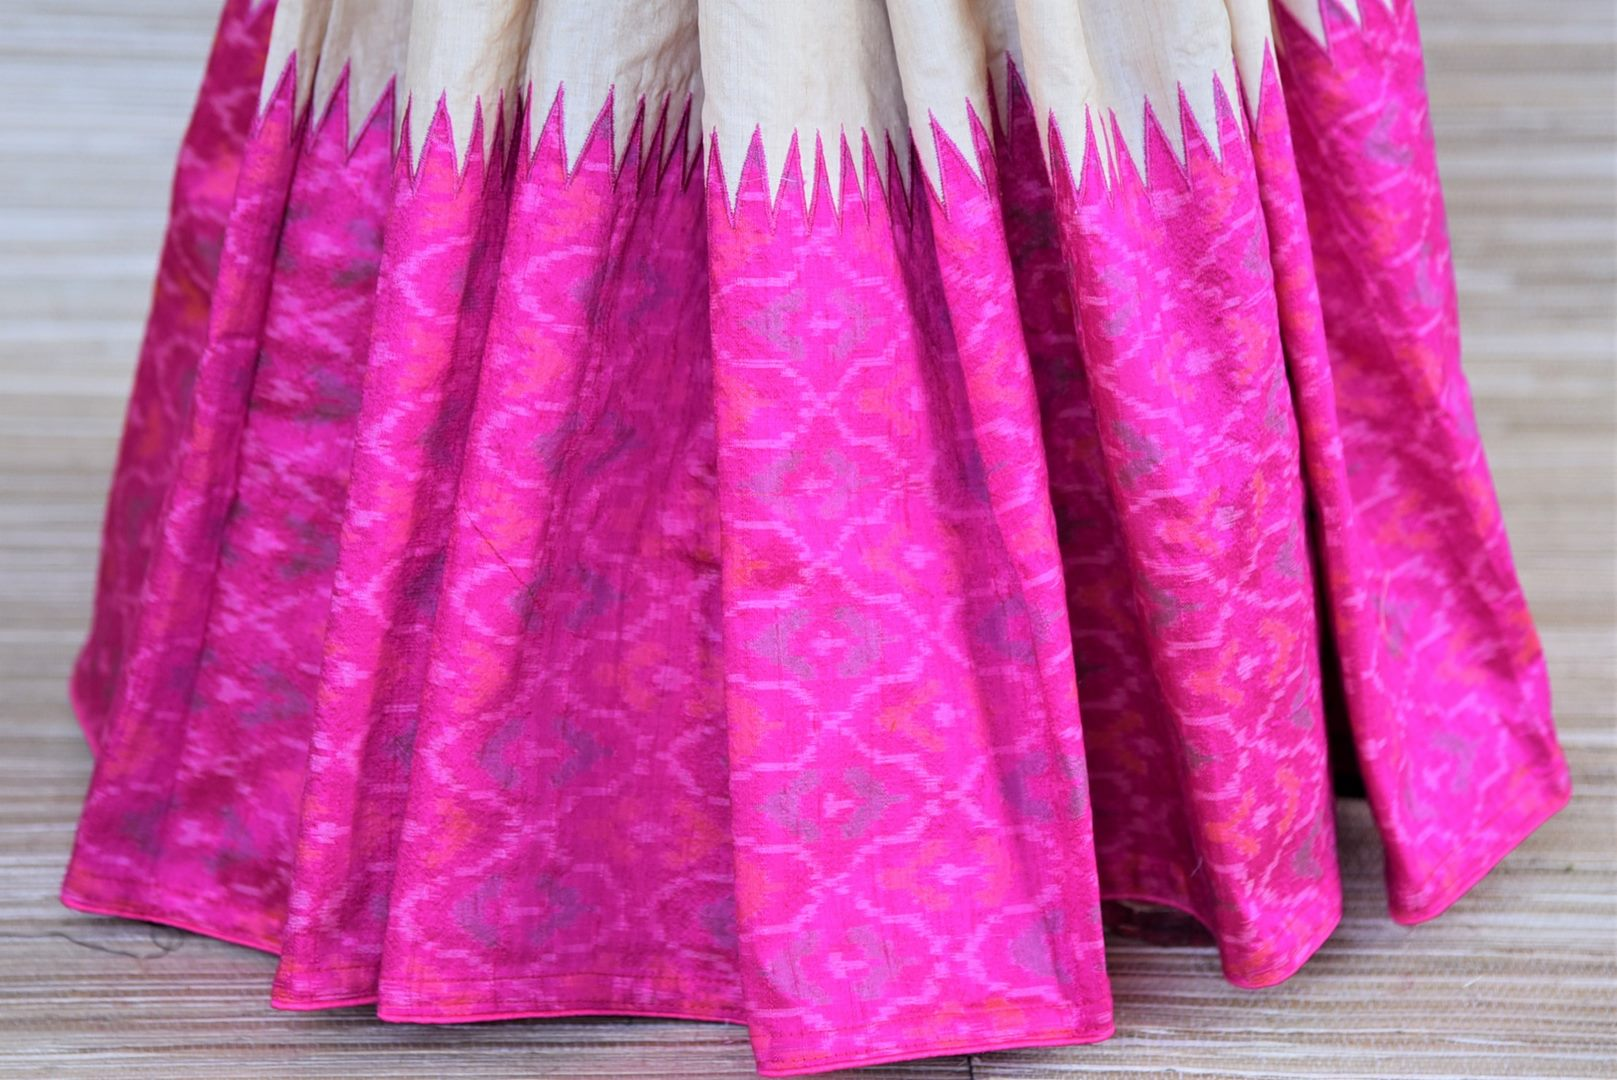 Shop gorgeous cream tussar raw silk sari online in USA with blue and pink ikat border. Grab exquisite handwoven sarees, embroidered saris, pure silk sarees for the coming festive and wedding season from Pure Elegance Indian boutique in USA. Shop online now.-pleats